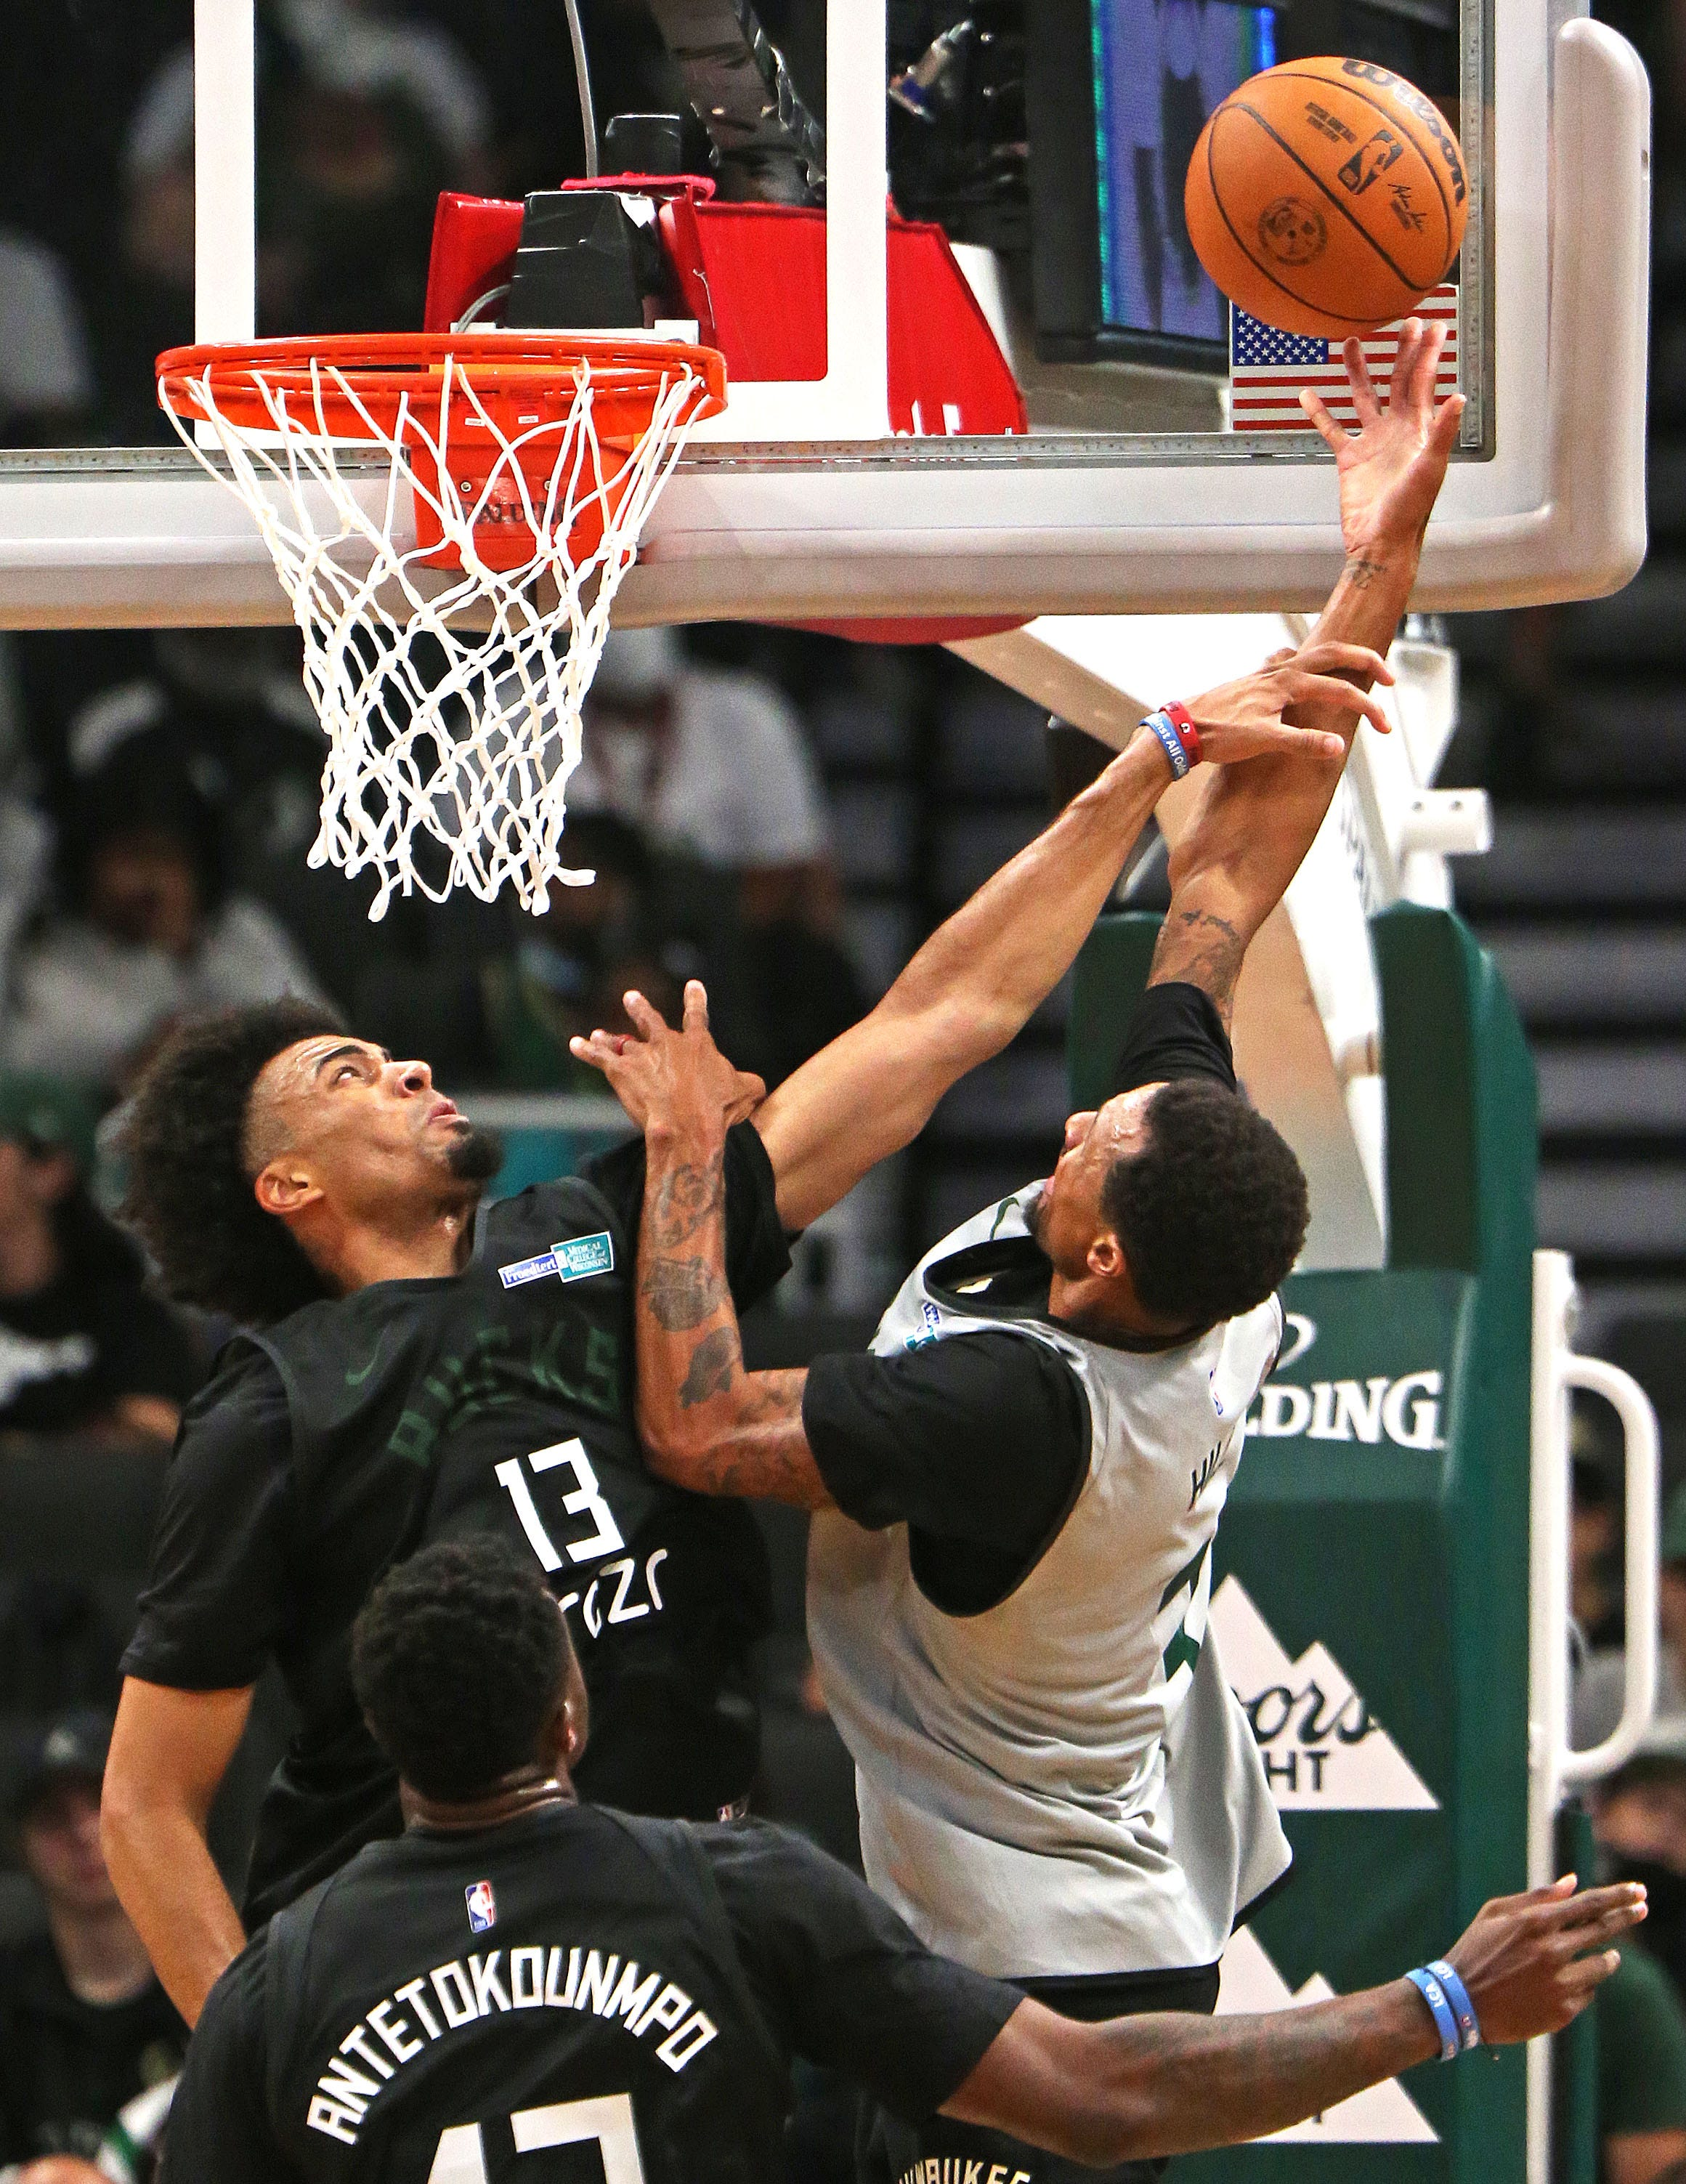 The Milwaukee Bucks got back to work in front of fans Sunday and set a competitive tone in their open scrimmage